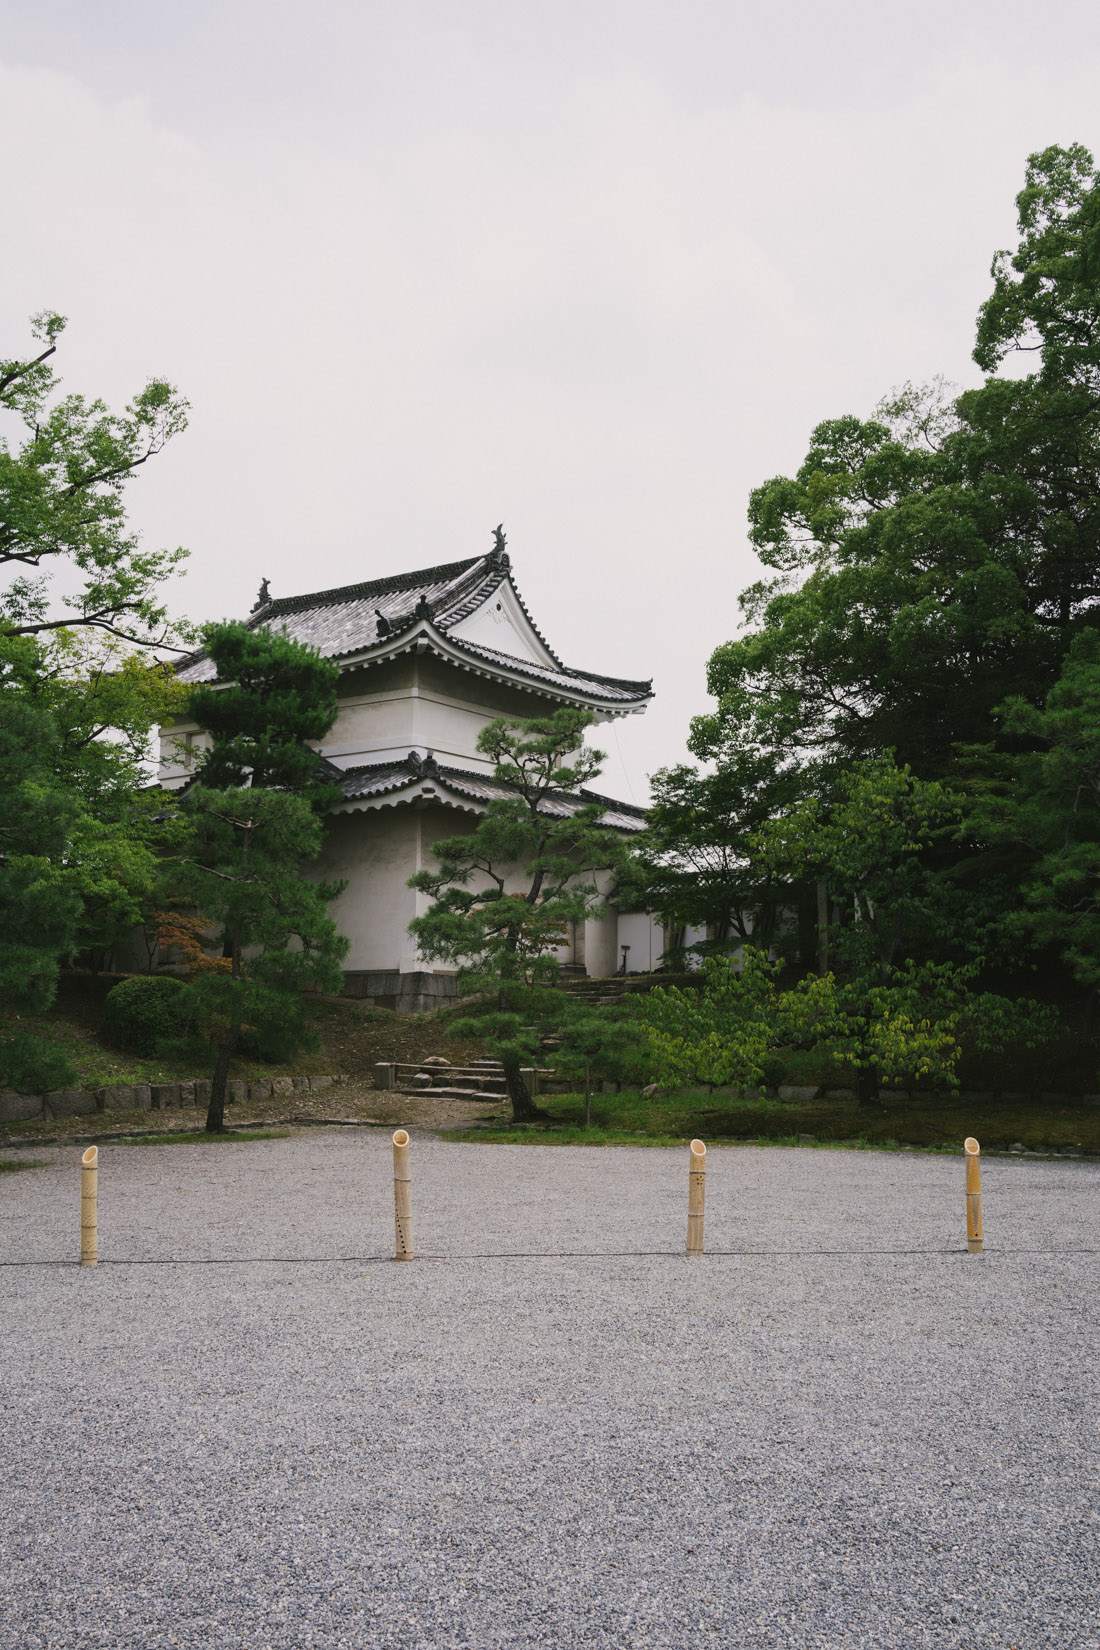 Many associate this white tower as being the Nijo Castle (we did), but it's simply a turret on the outside walls.